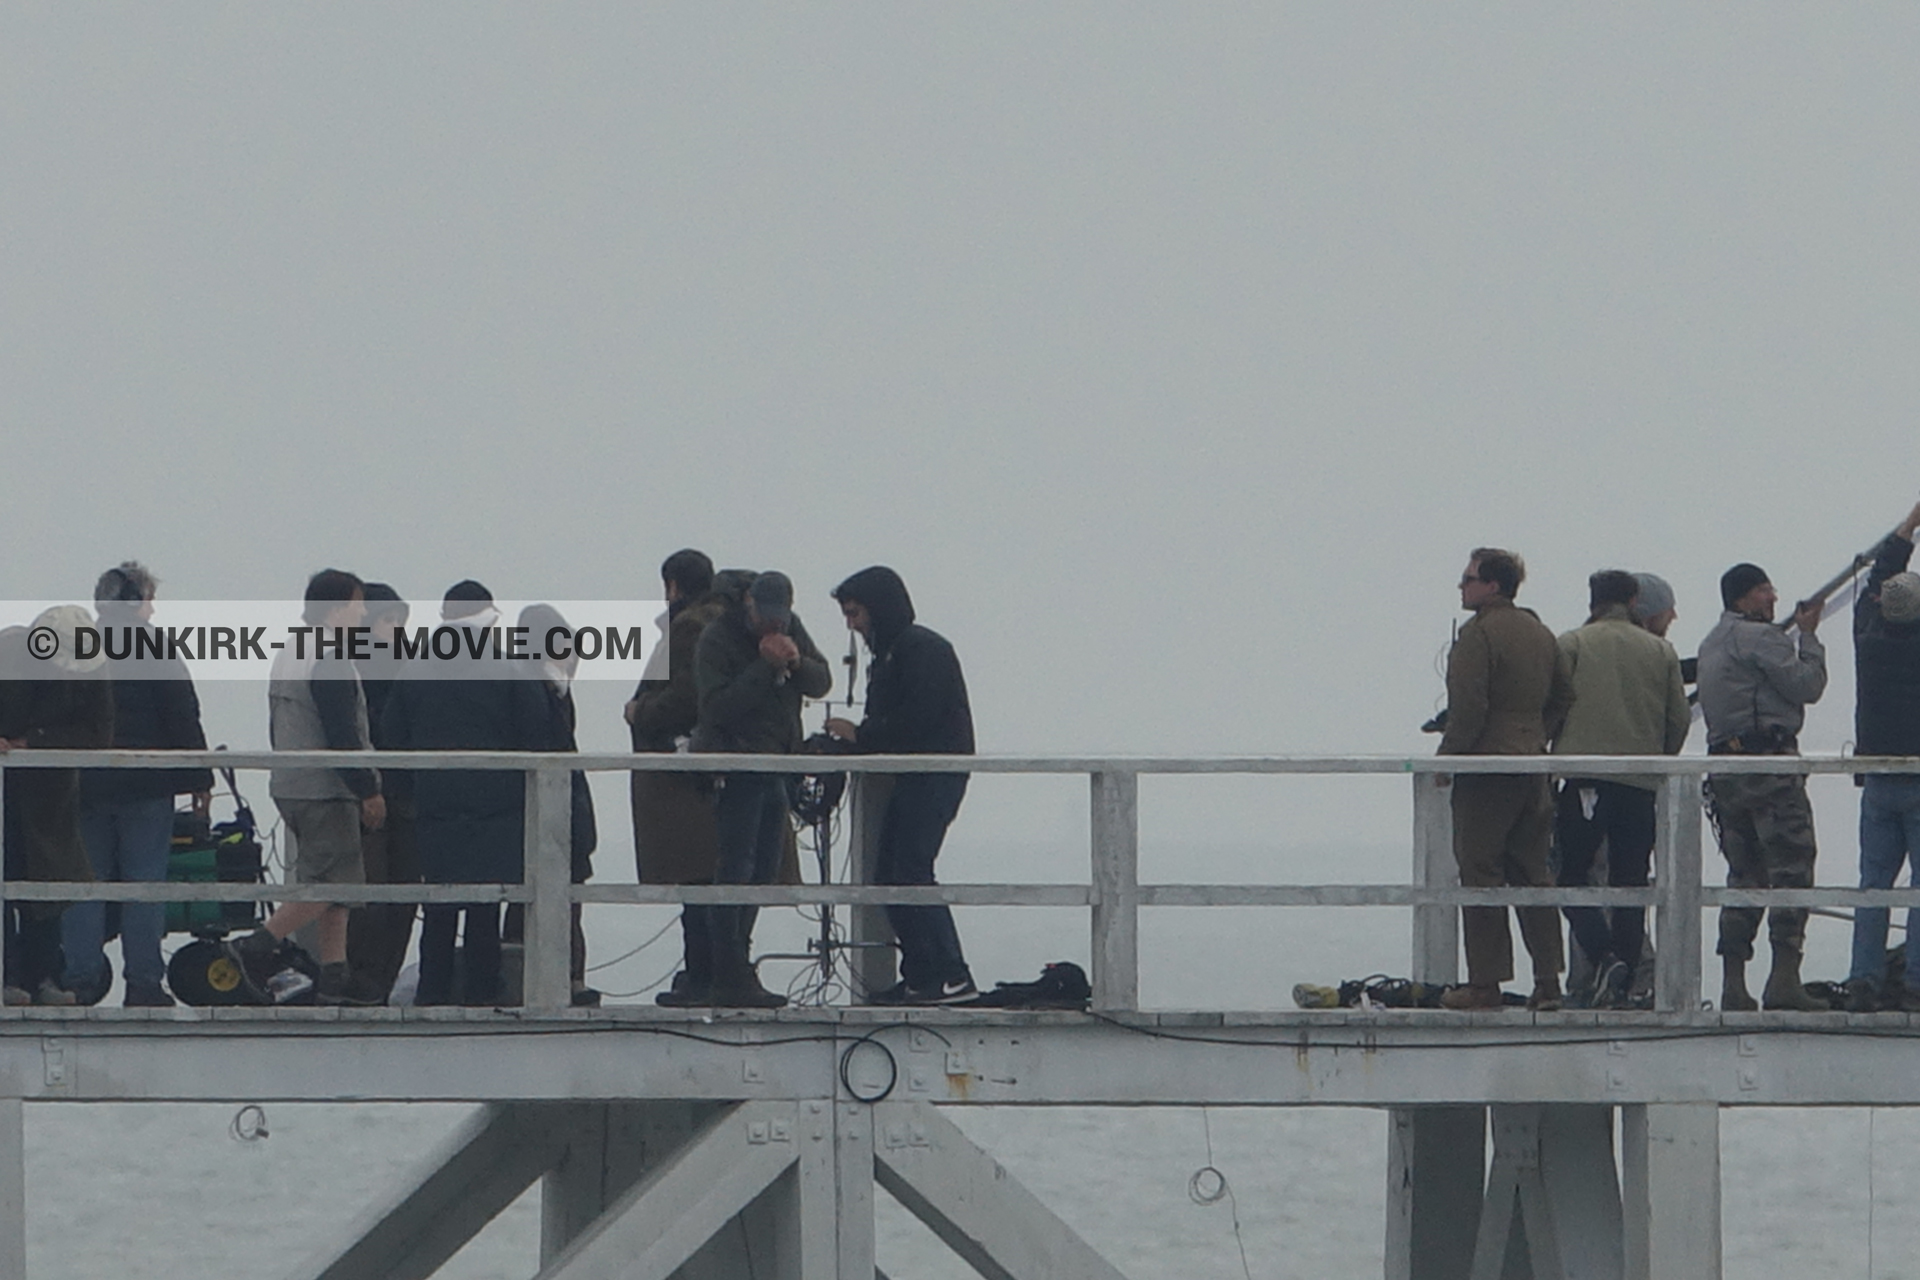 Picture with grey sky, EST pier, technical team,  from behind the scene of the Dunkirk movie by Nolan